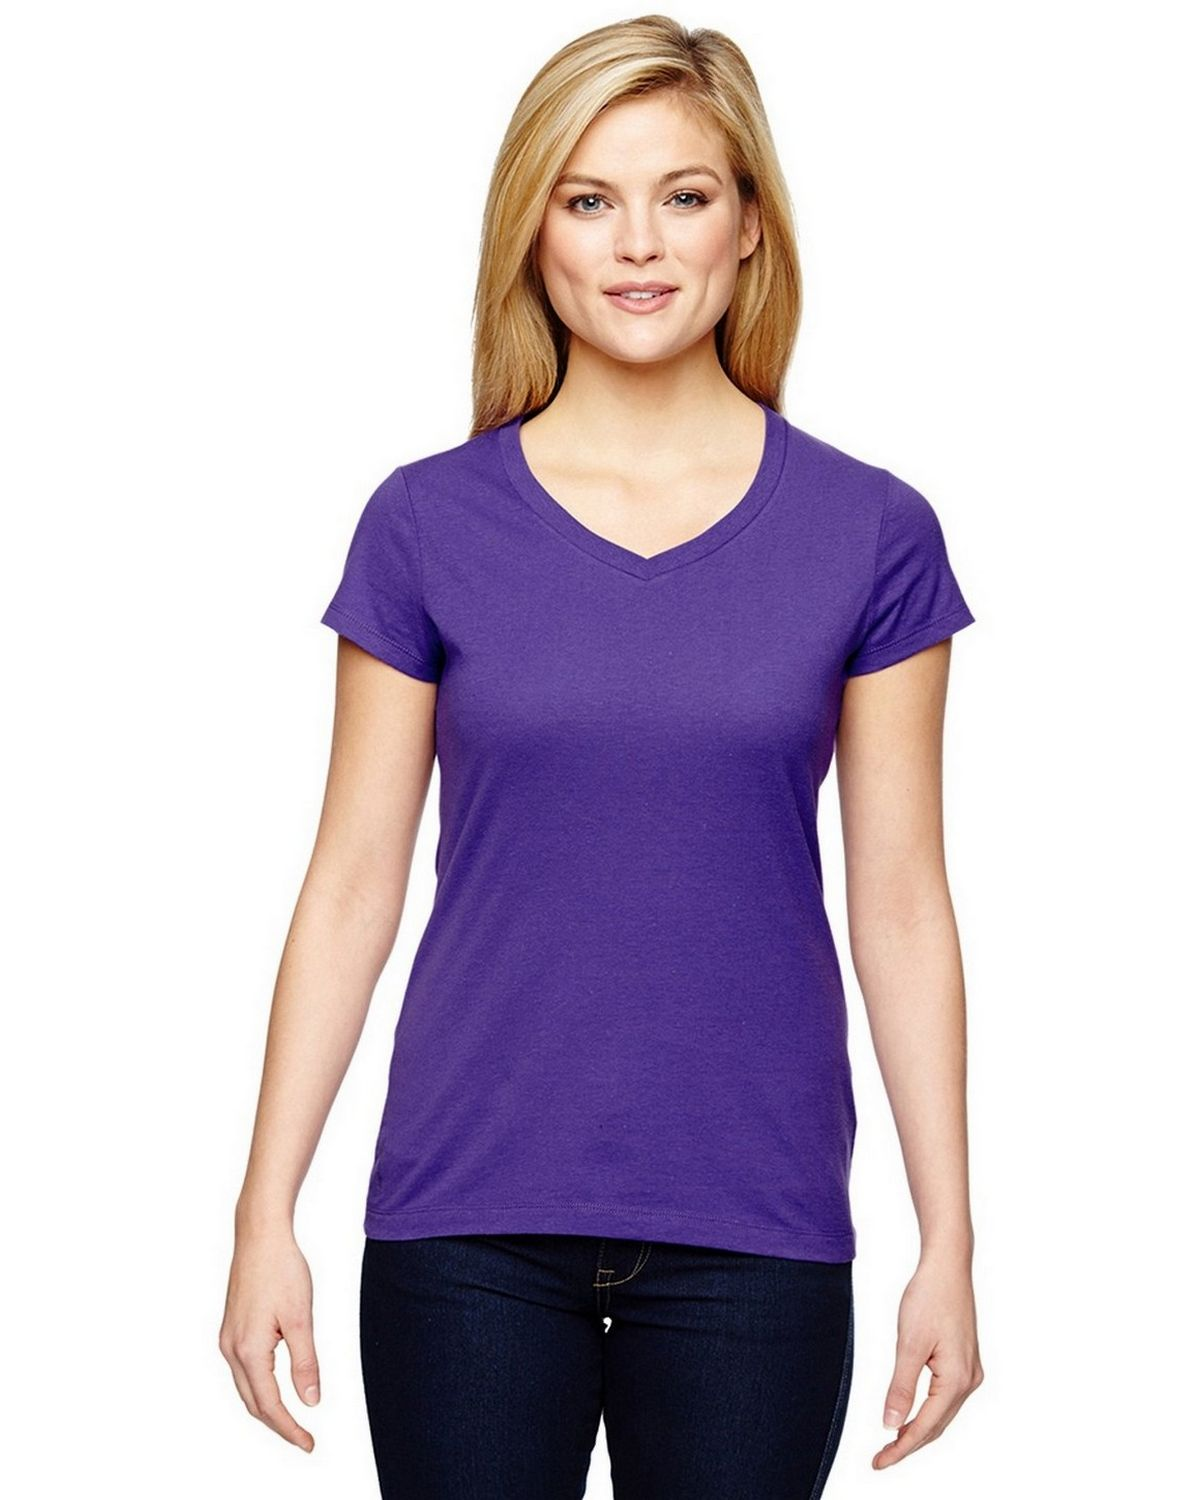 Champion Womens Vapor Cotton Short-Sleeve V-Neck T-Shirt T050 -Sport Purple L T050